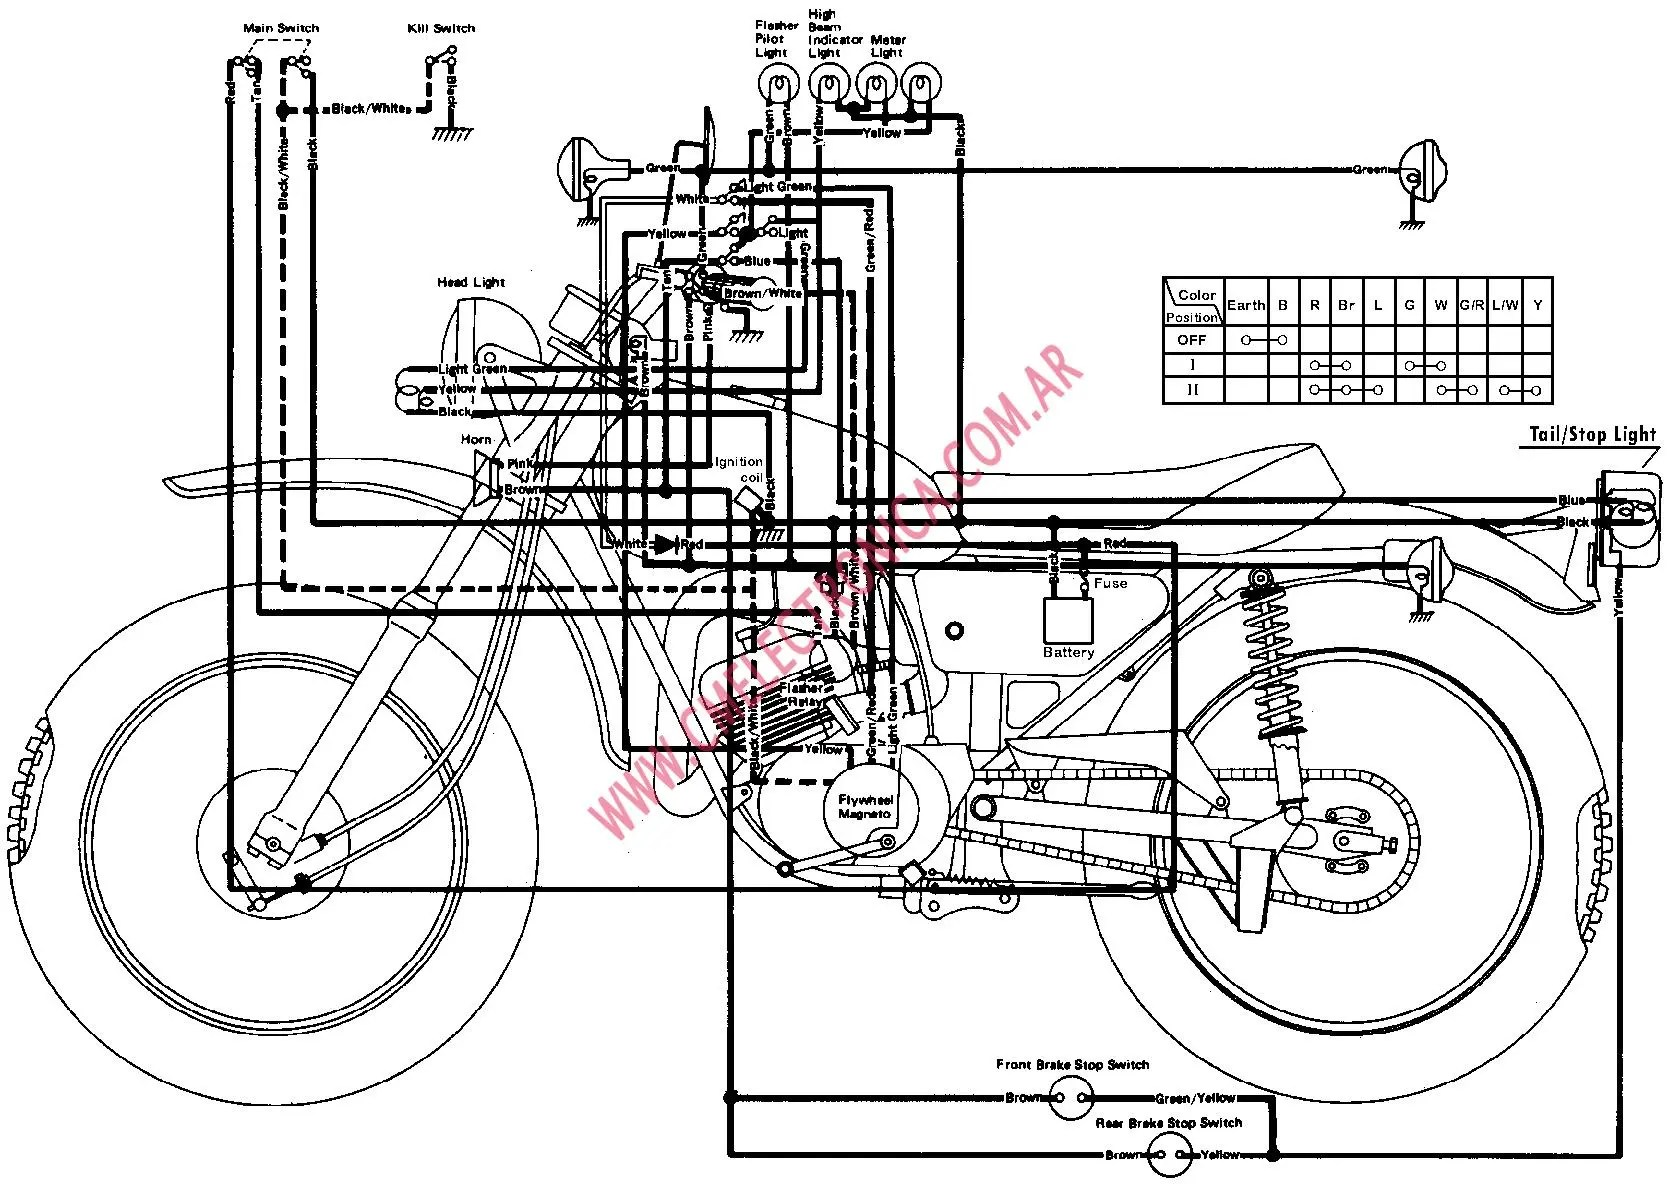 hight resolution of 1979 dt 250 wiring diagram wiring diagram compilation 1975 yamaha dt250 wiring diagram wiring diagram toolbox